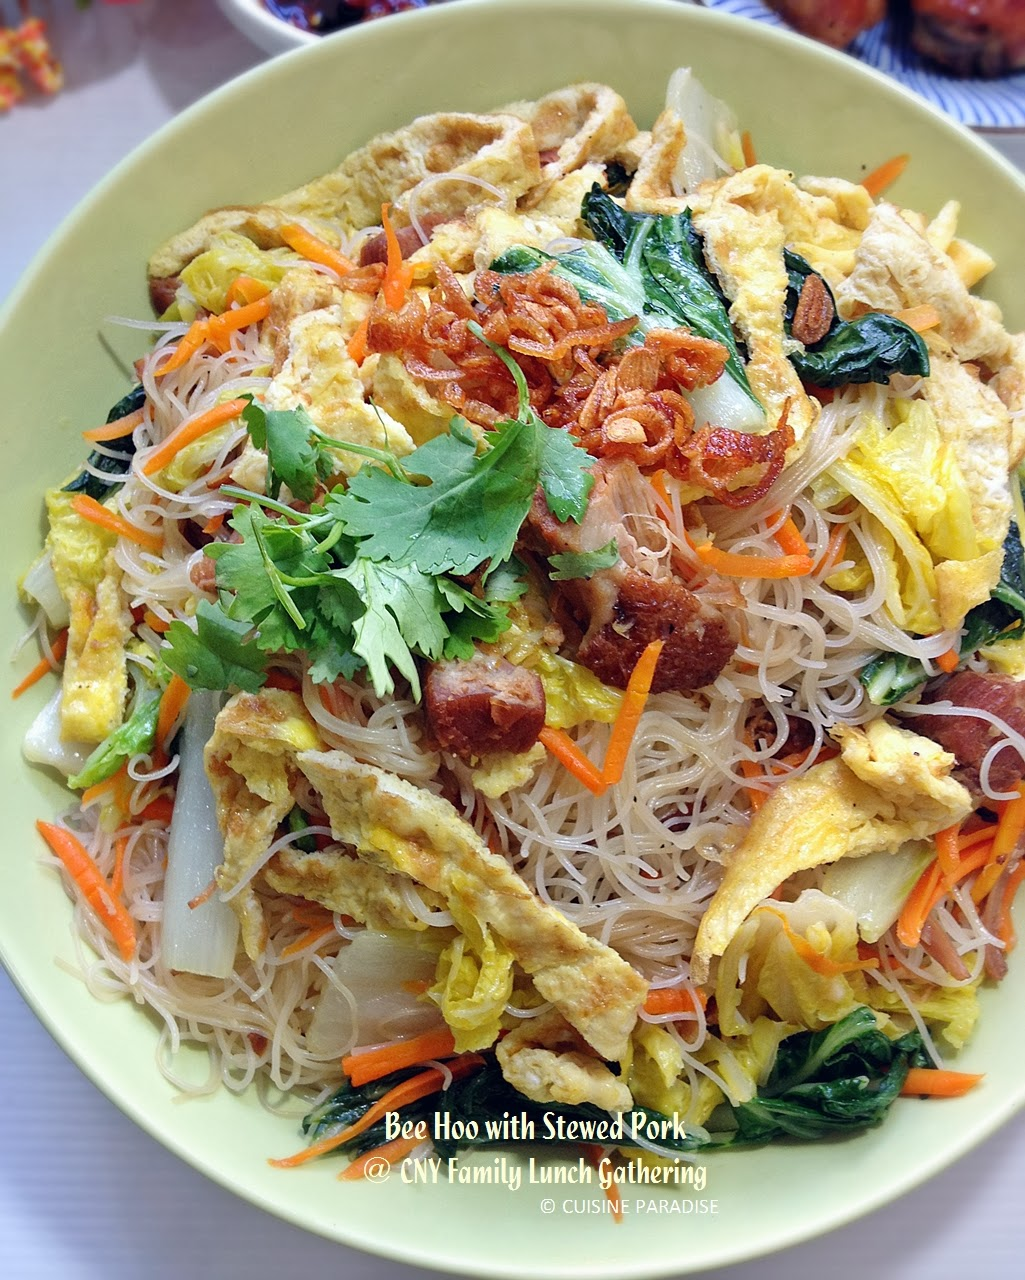 Cuisine paradise singapore food blog recipes reviews and main dish fried bee hoon with stewed pork forumfinder Choice Image